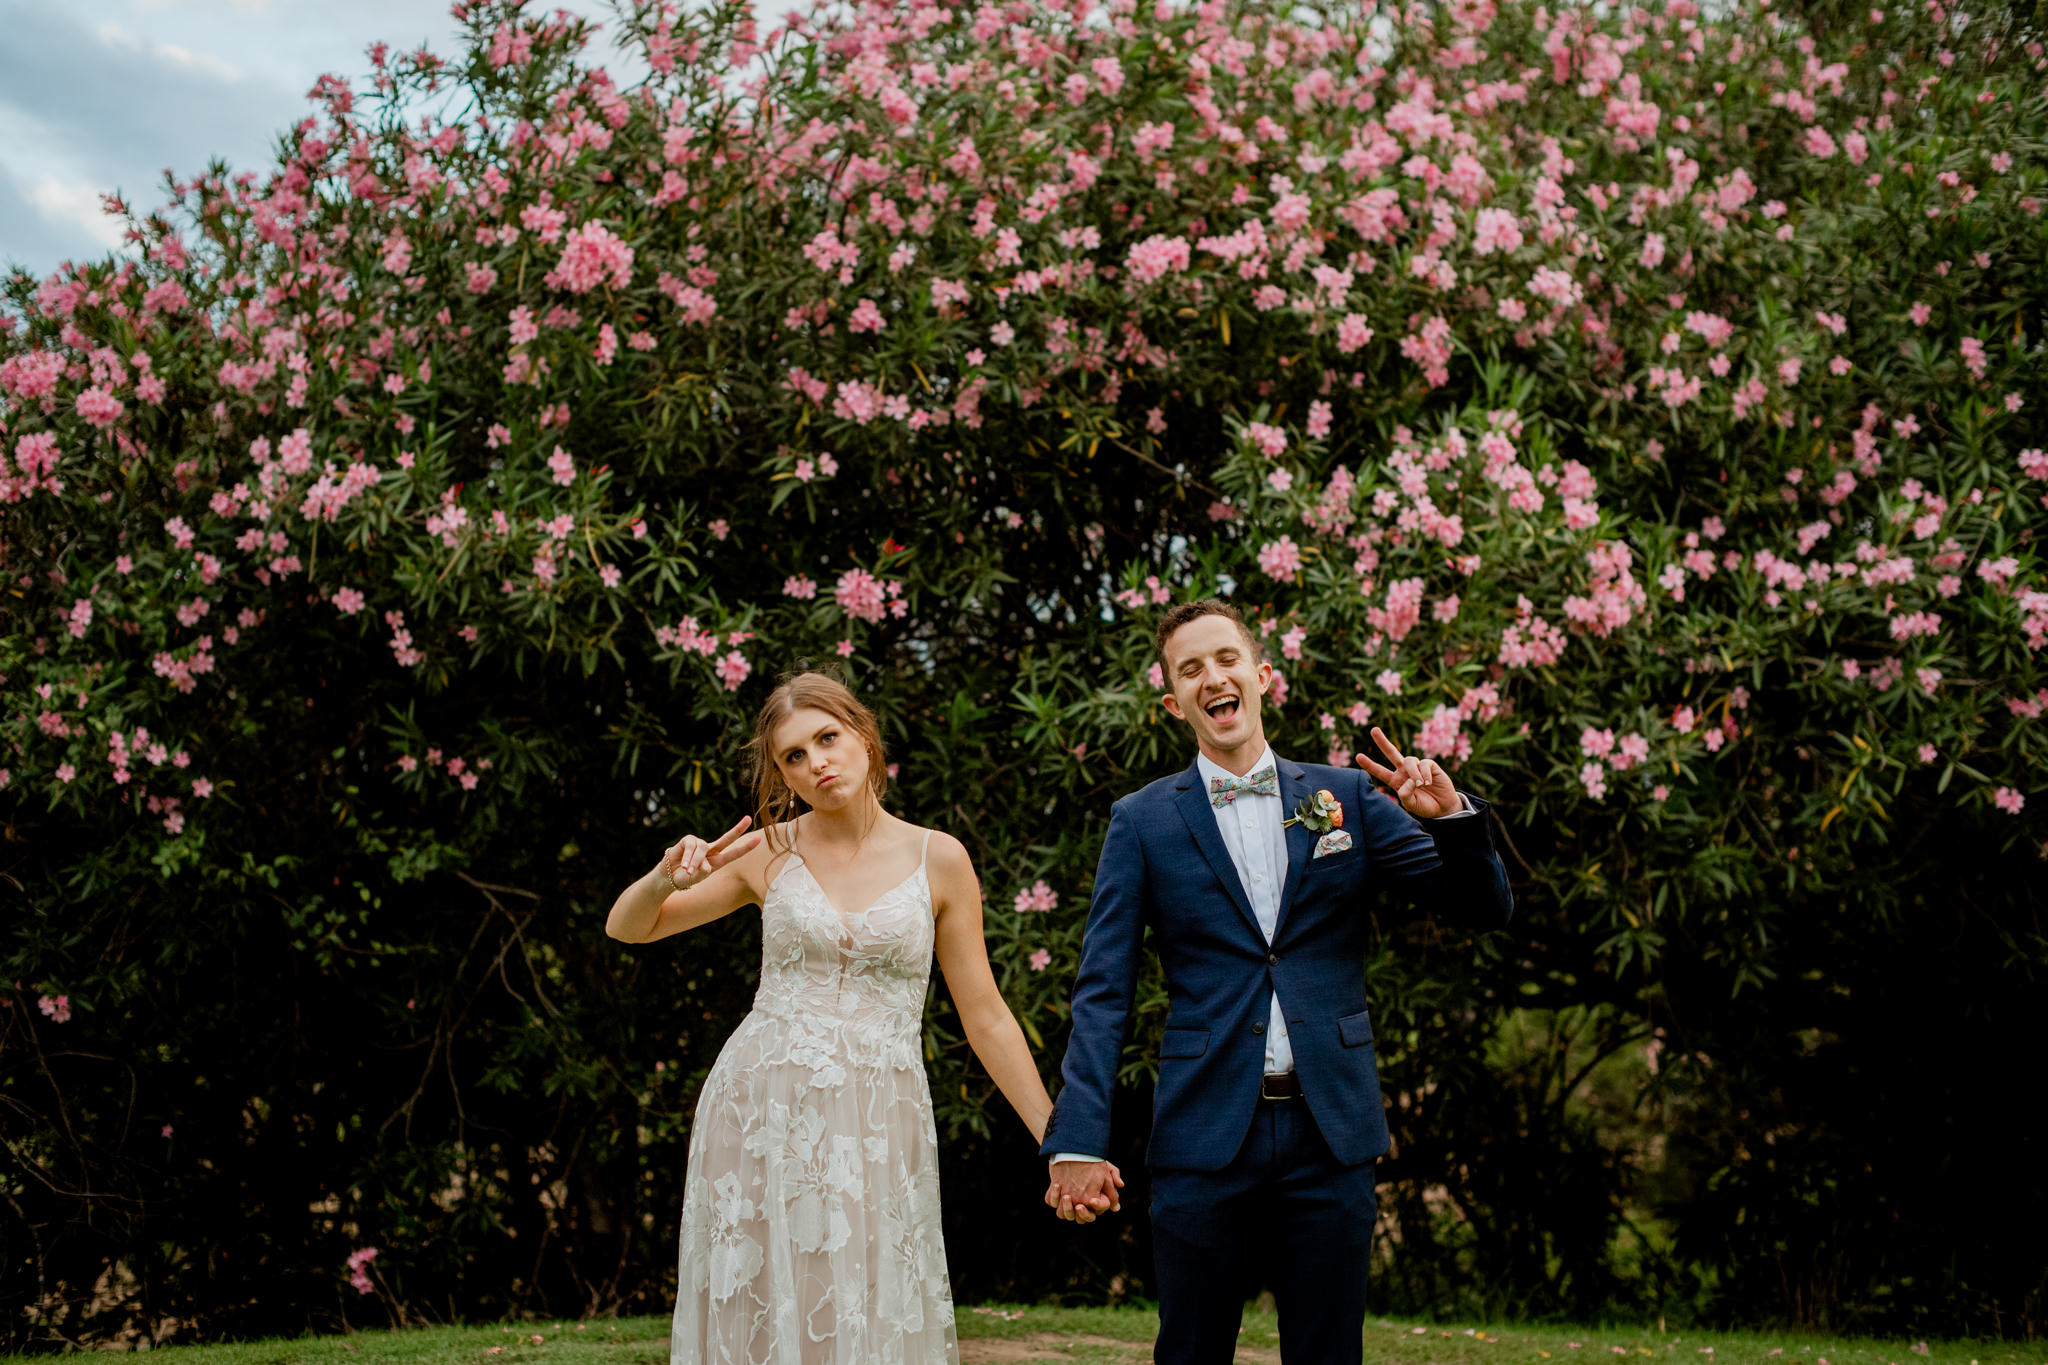 A newly married bride and groom making cute poses in front of a pink flower bush